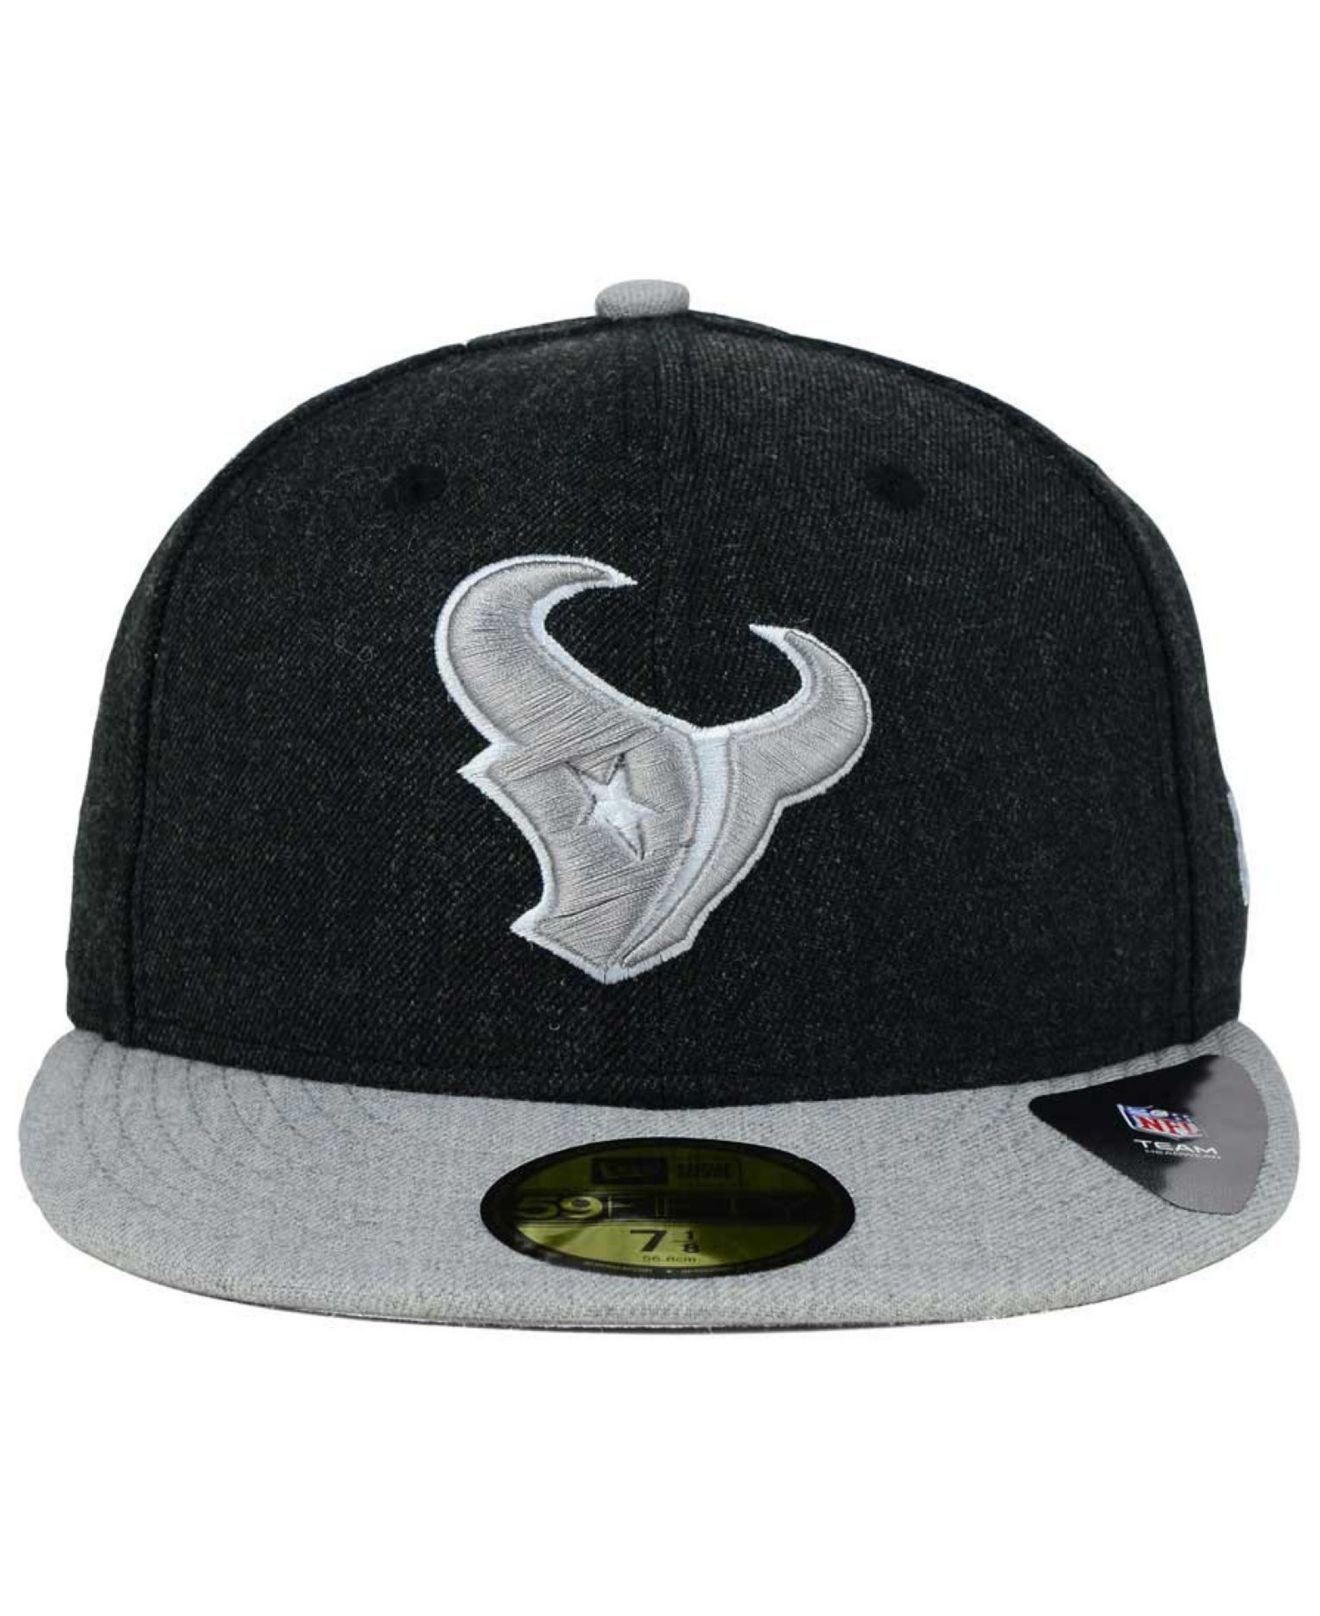 f0d38916e2b sale lyst ktz houston texans heather action 2 tone 59fifty cap in black  e97a2 c3faf